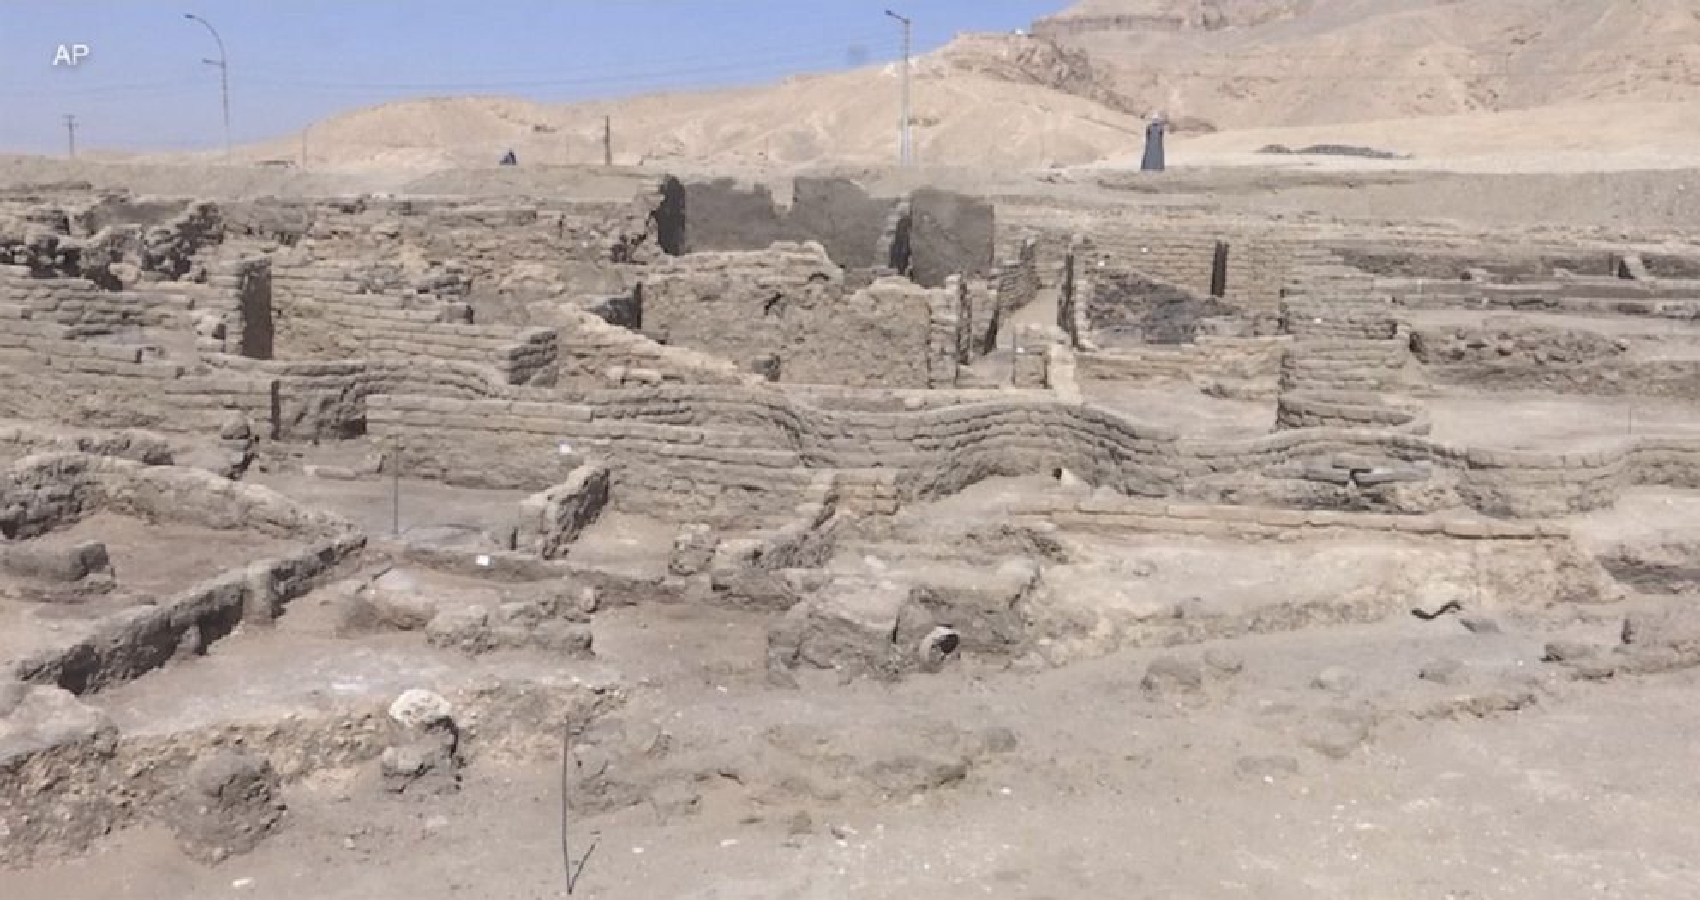 A 3,000-Year-Old 'Lost Golden City' Has Been Unearthed In Egypt